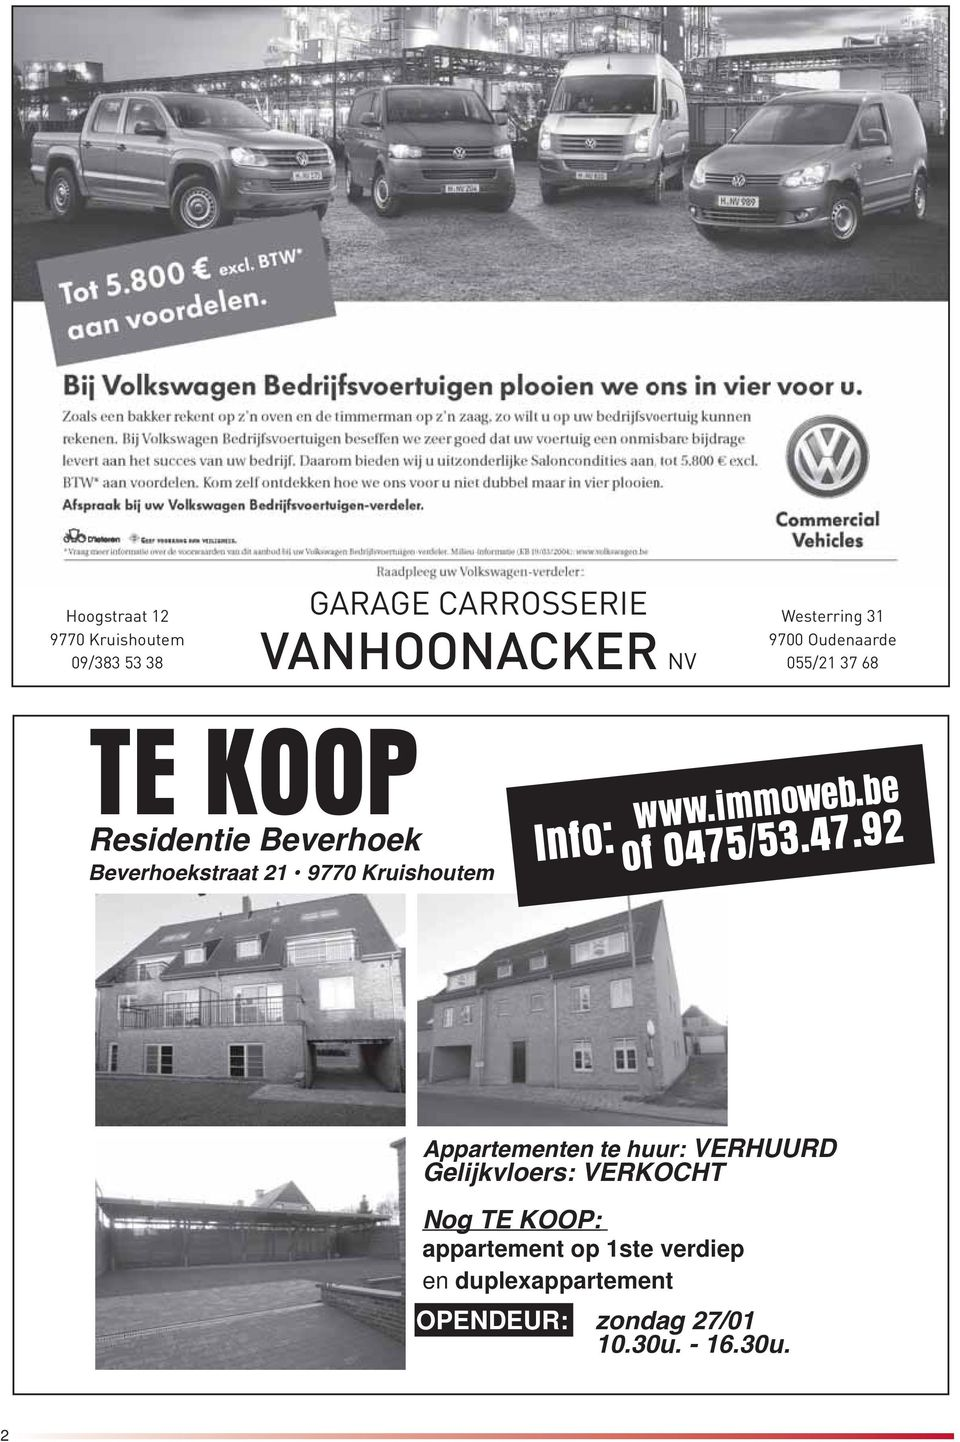 KOOP Residentie Beverhoek Info: www.immoweb.be of 0475